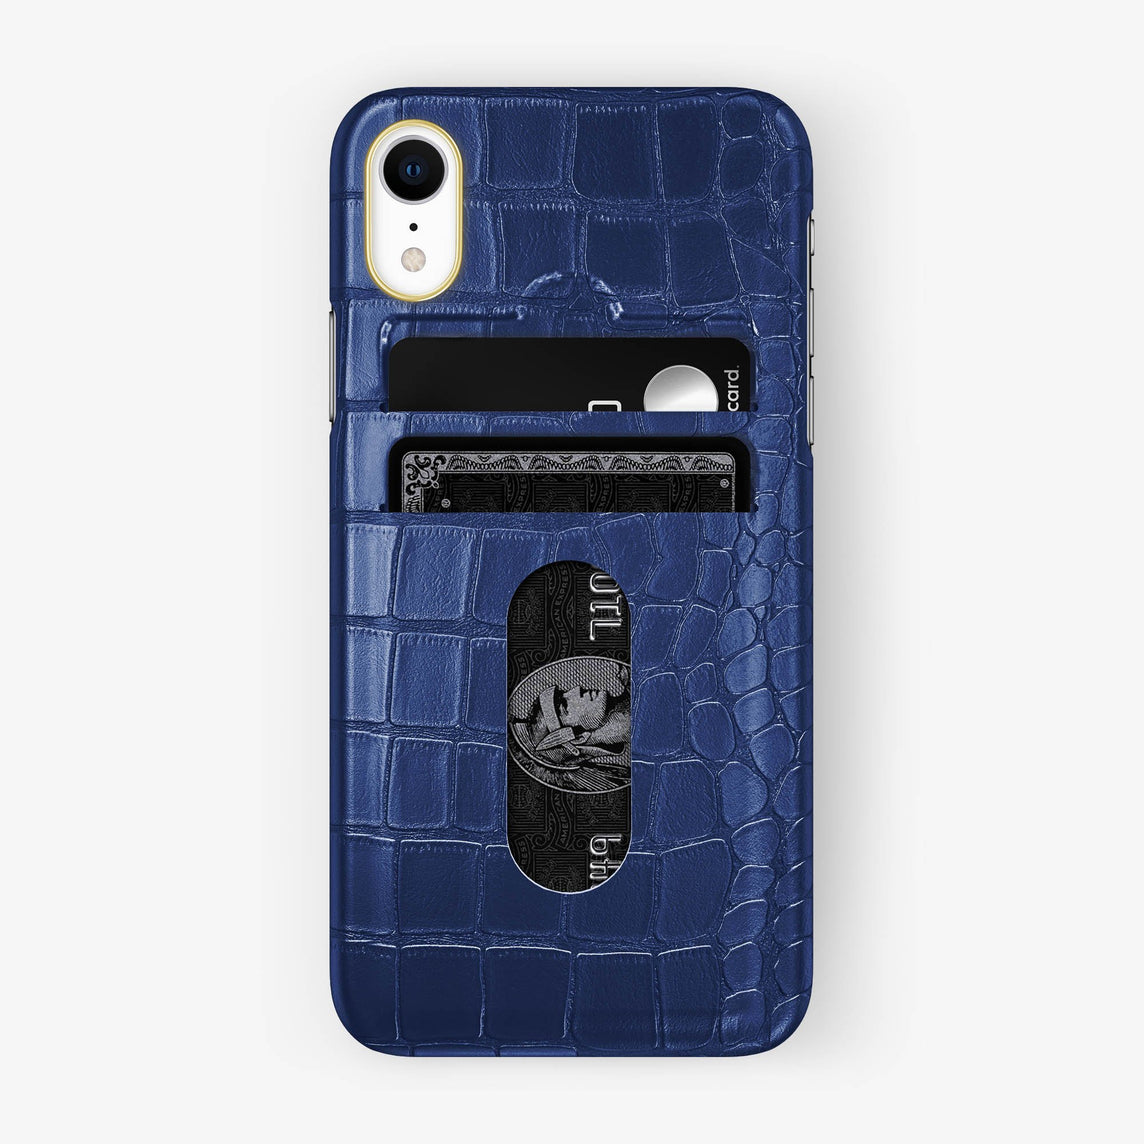 Alligator [iPhone Card Holder Case] [model:iphone-xr-case] [colour:navy-blue] [finishing:yellow-gold]